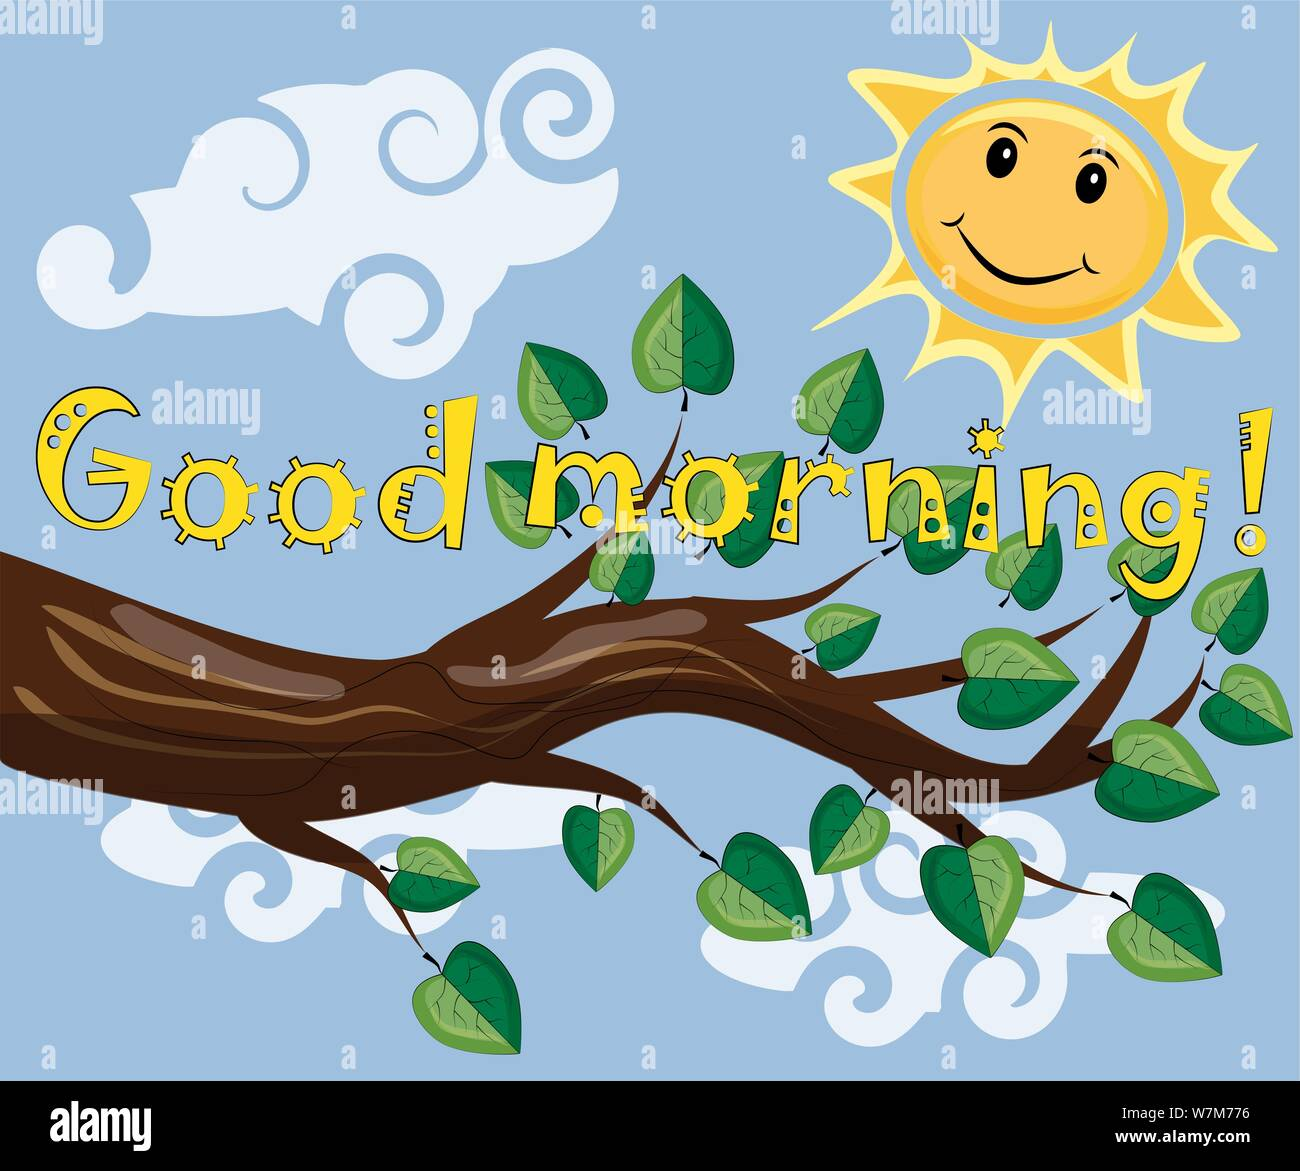 In The Morning The Sun Shines And Smiles Inscription Good Morning Morning Breakfast Stock Vector Image Art Alamy